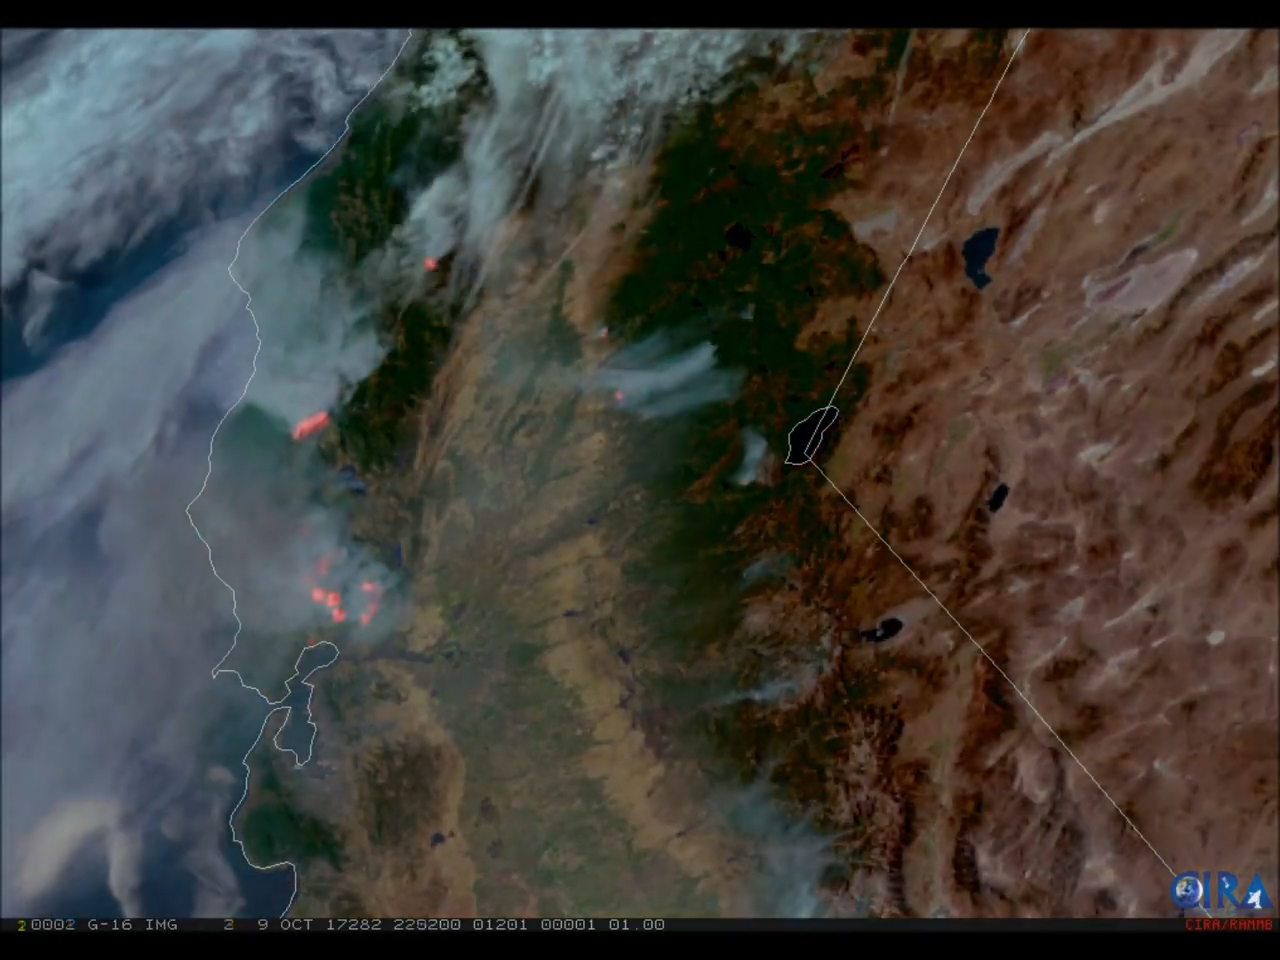 GOES-16 GeoColor and fire temperature RGB (red-green-blue) imagery of the wildfires raging in California on October 9, 2017. (Credit: CIRA)